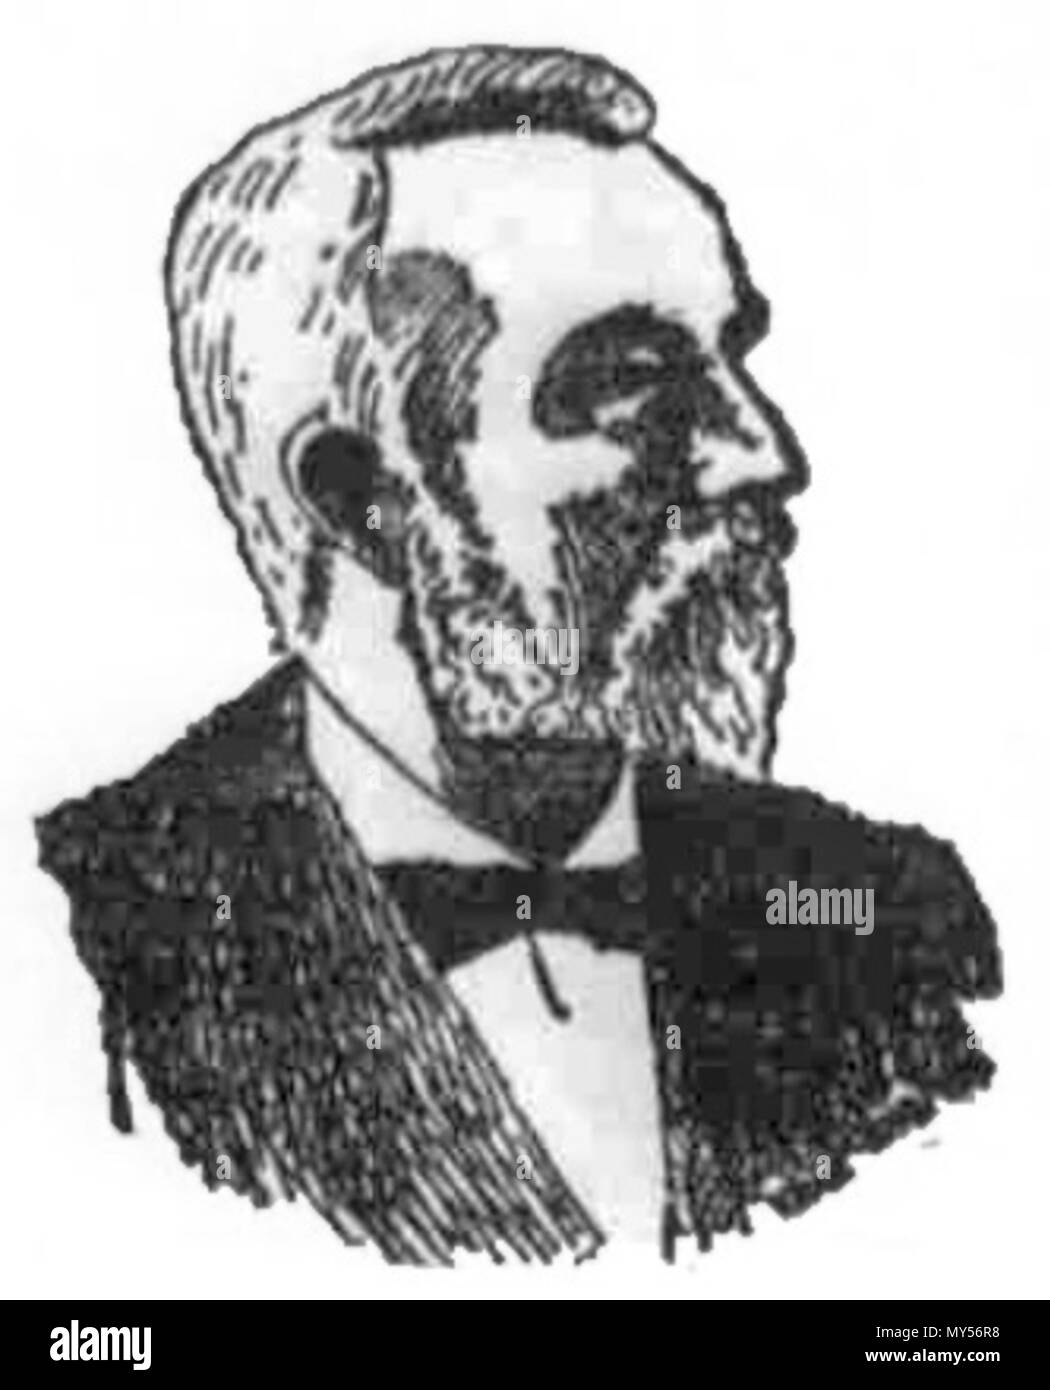 . English: John Mott-Smith (1824–1895) was the first dentist to set up a permanant practice in the Kingdom of Hawaii, and a politician and diplomat. 1895. newspaper sketch 385 Newspaper Sketch of John Mott-Smith - Stock Image